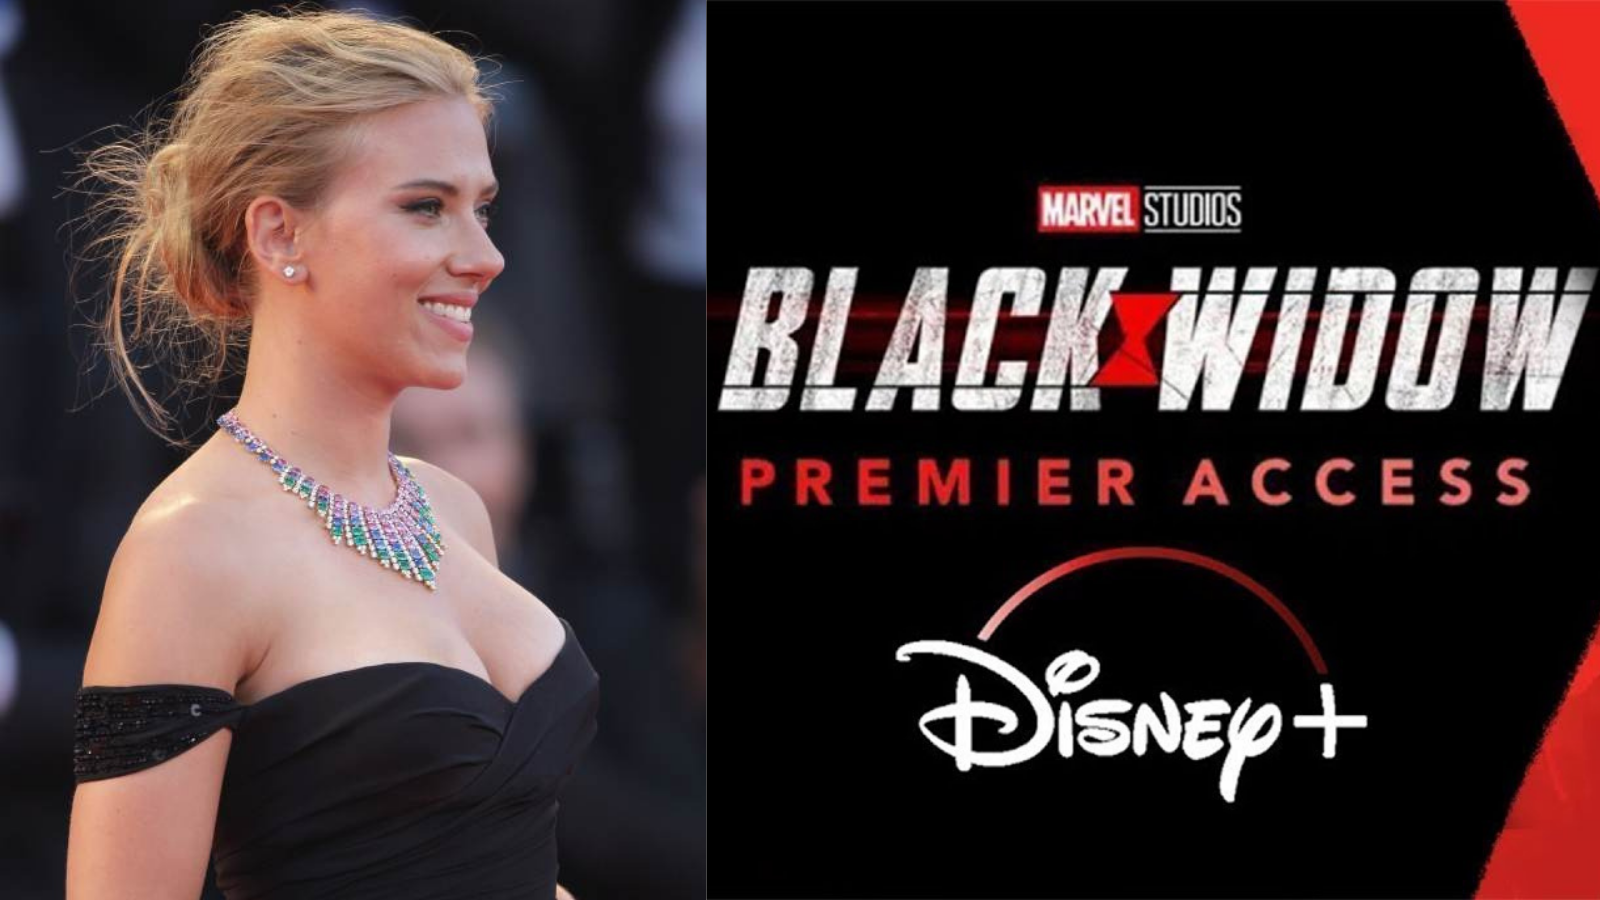 Disney Co.'s halts future projects With Scarlett Johansson over streaming rights dispute